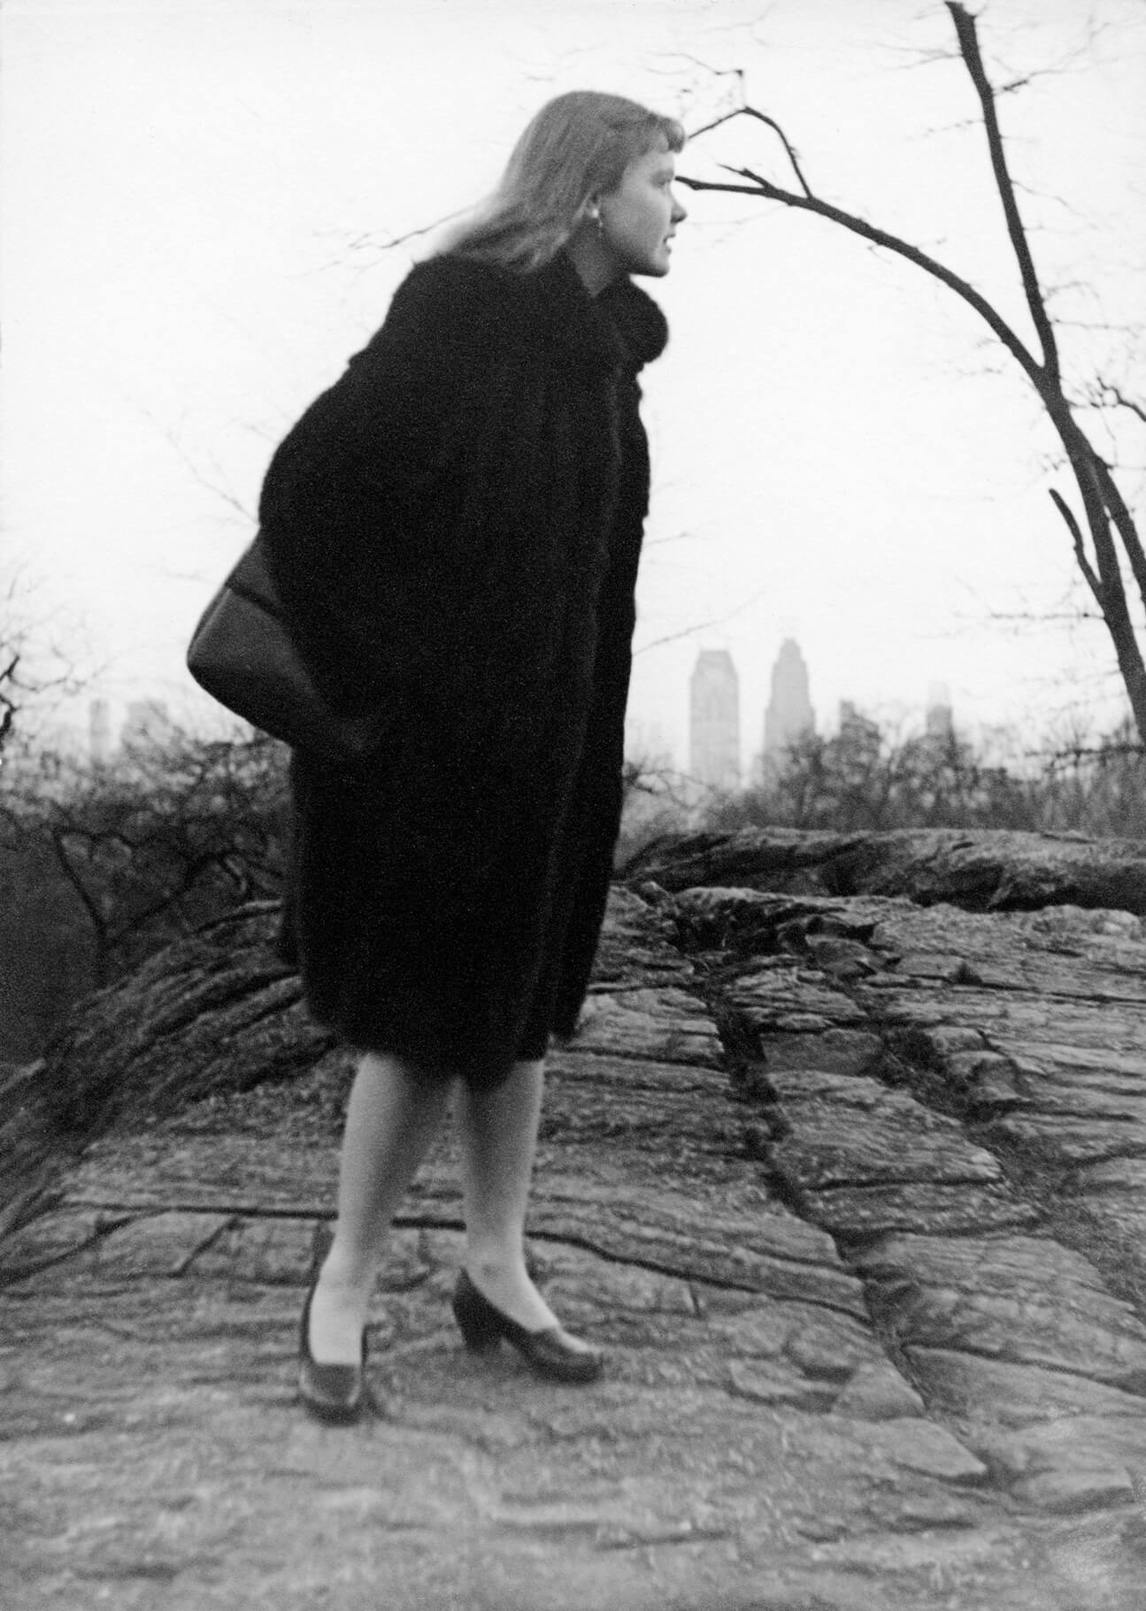 Françoise Sullivan in Central Park, New York, c. 1946. Photograph by Laredo.